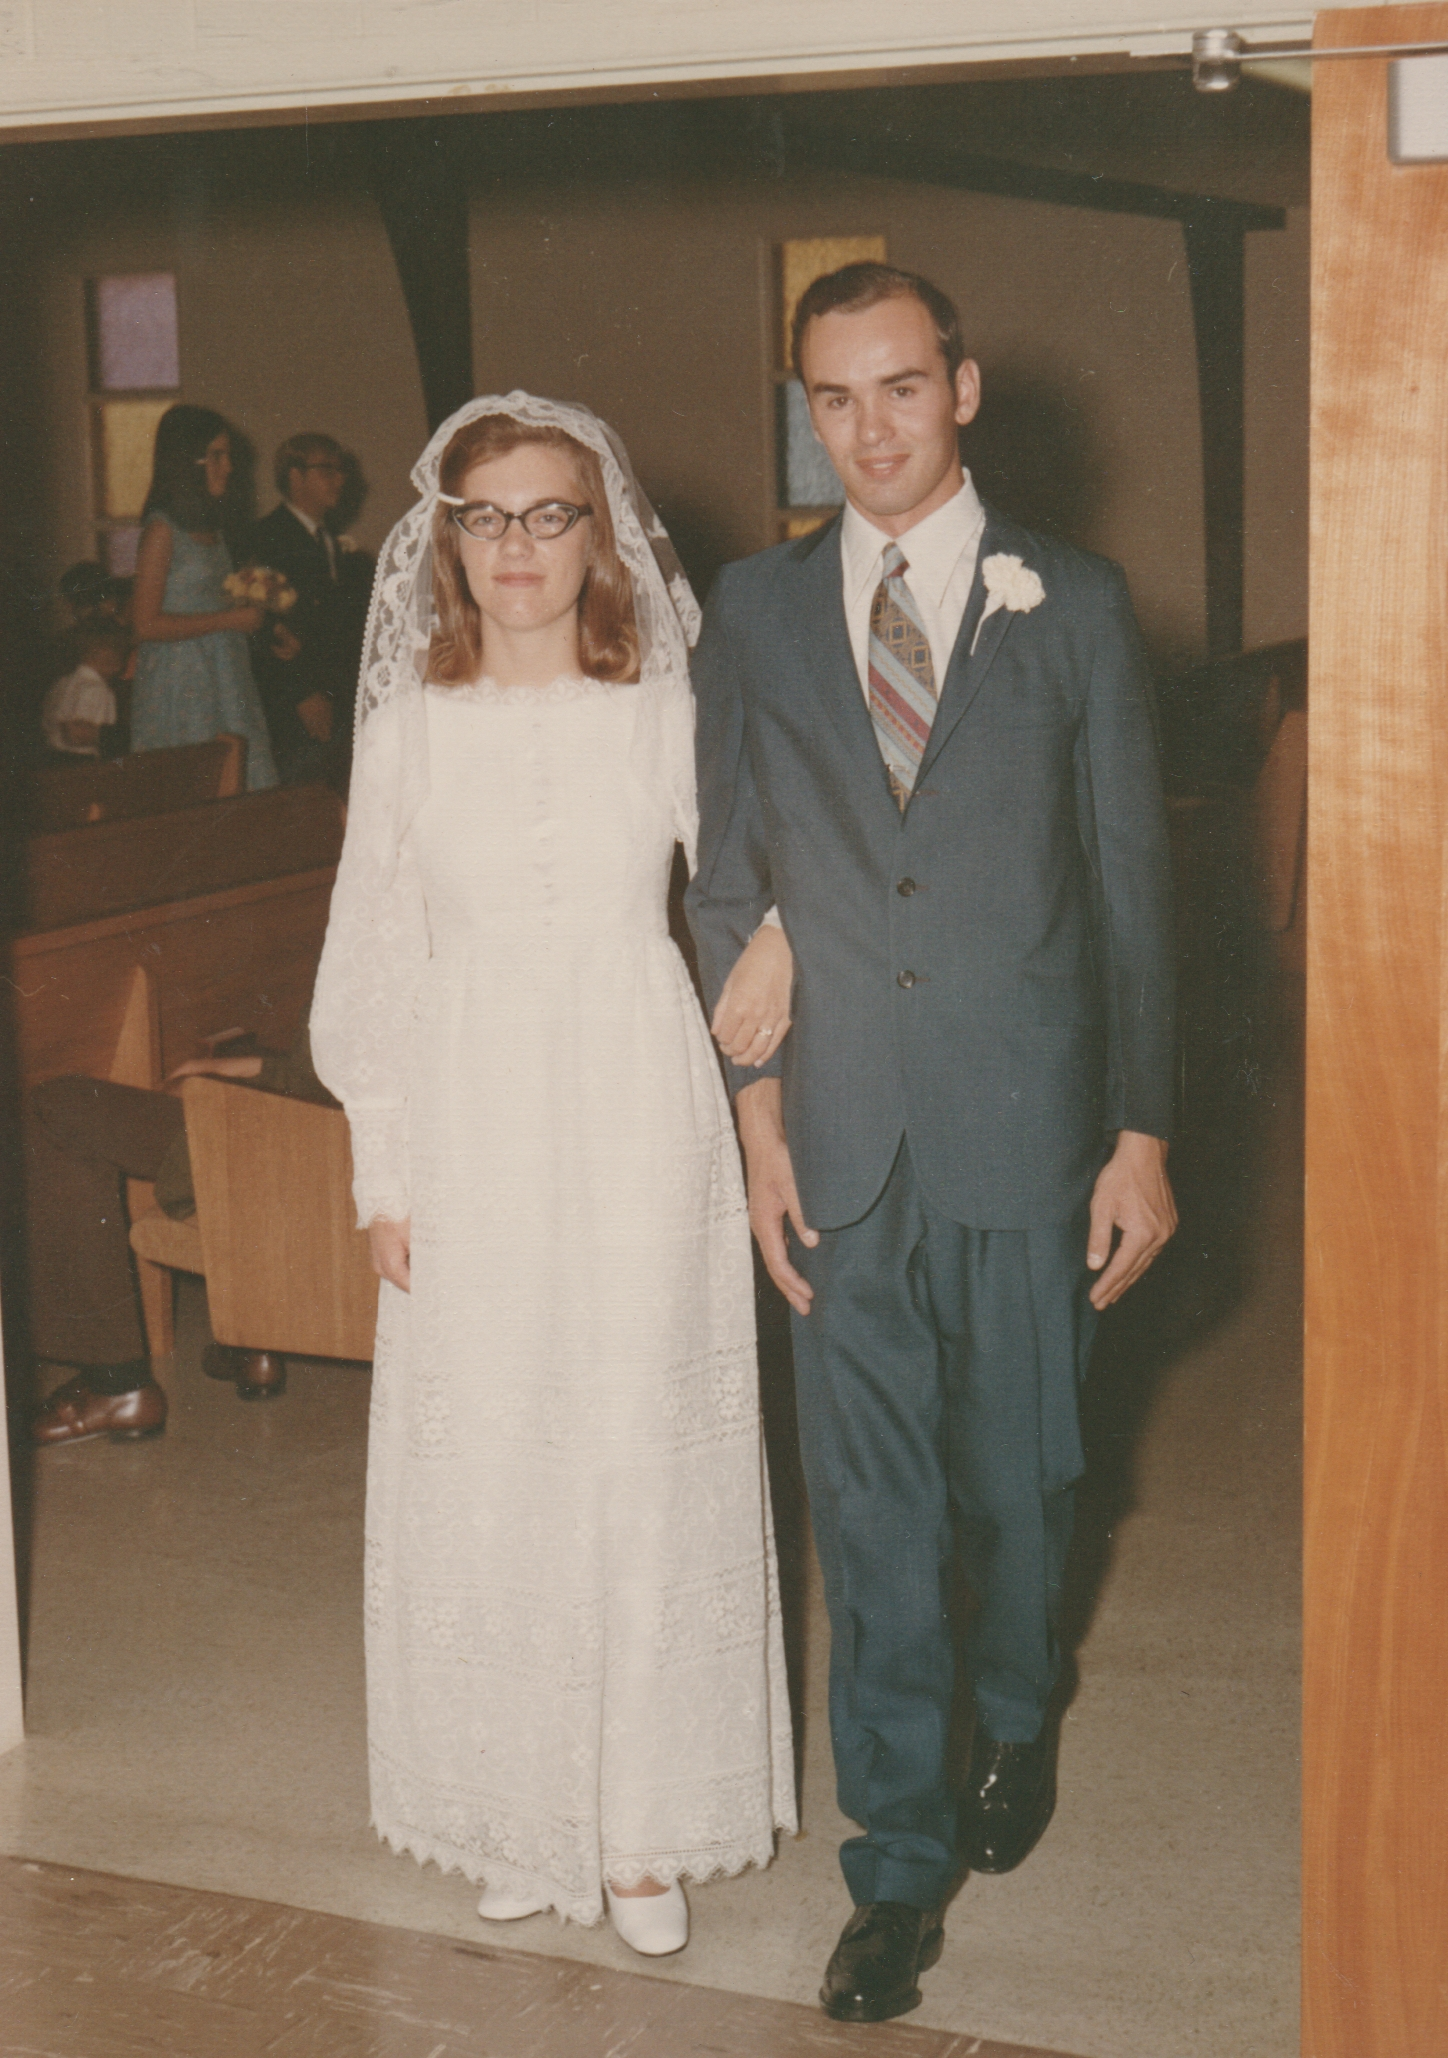 1971-09-04 - Saturday - Wedding Photos-10.jpg